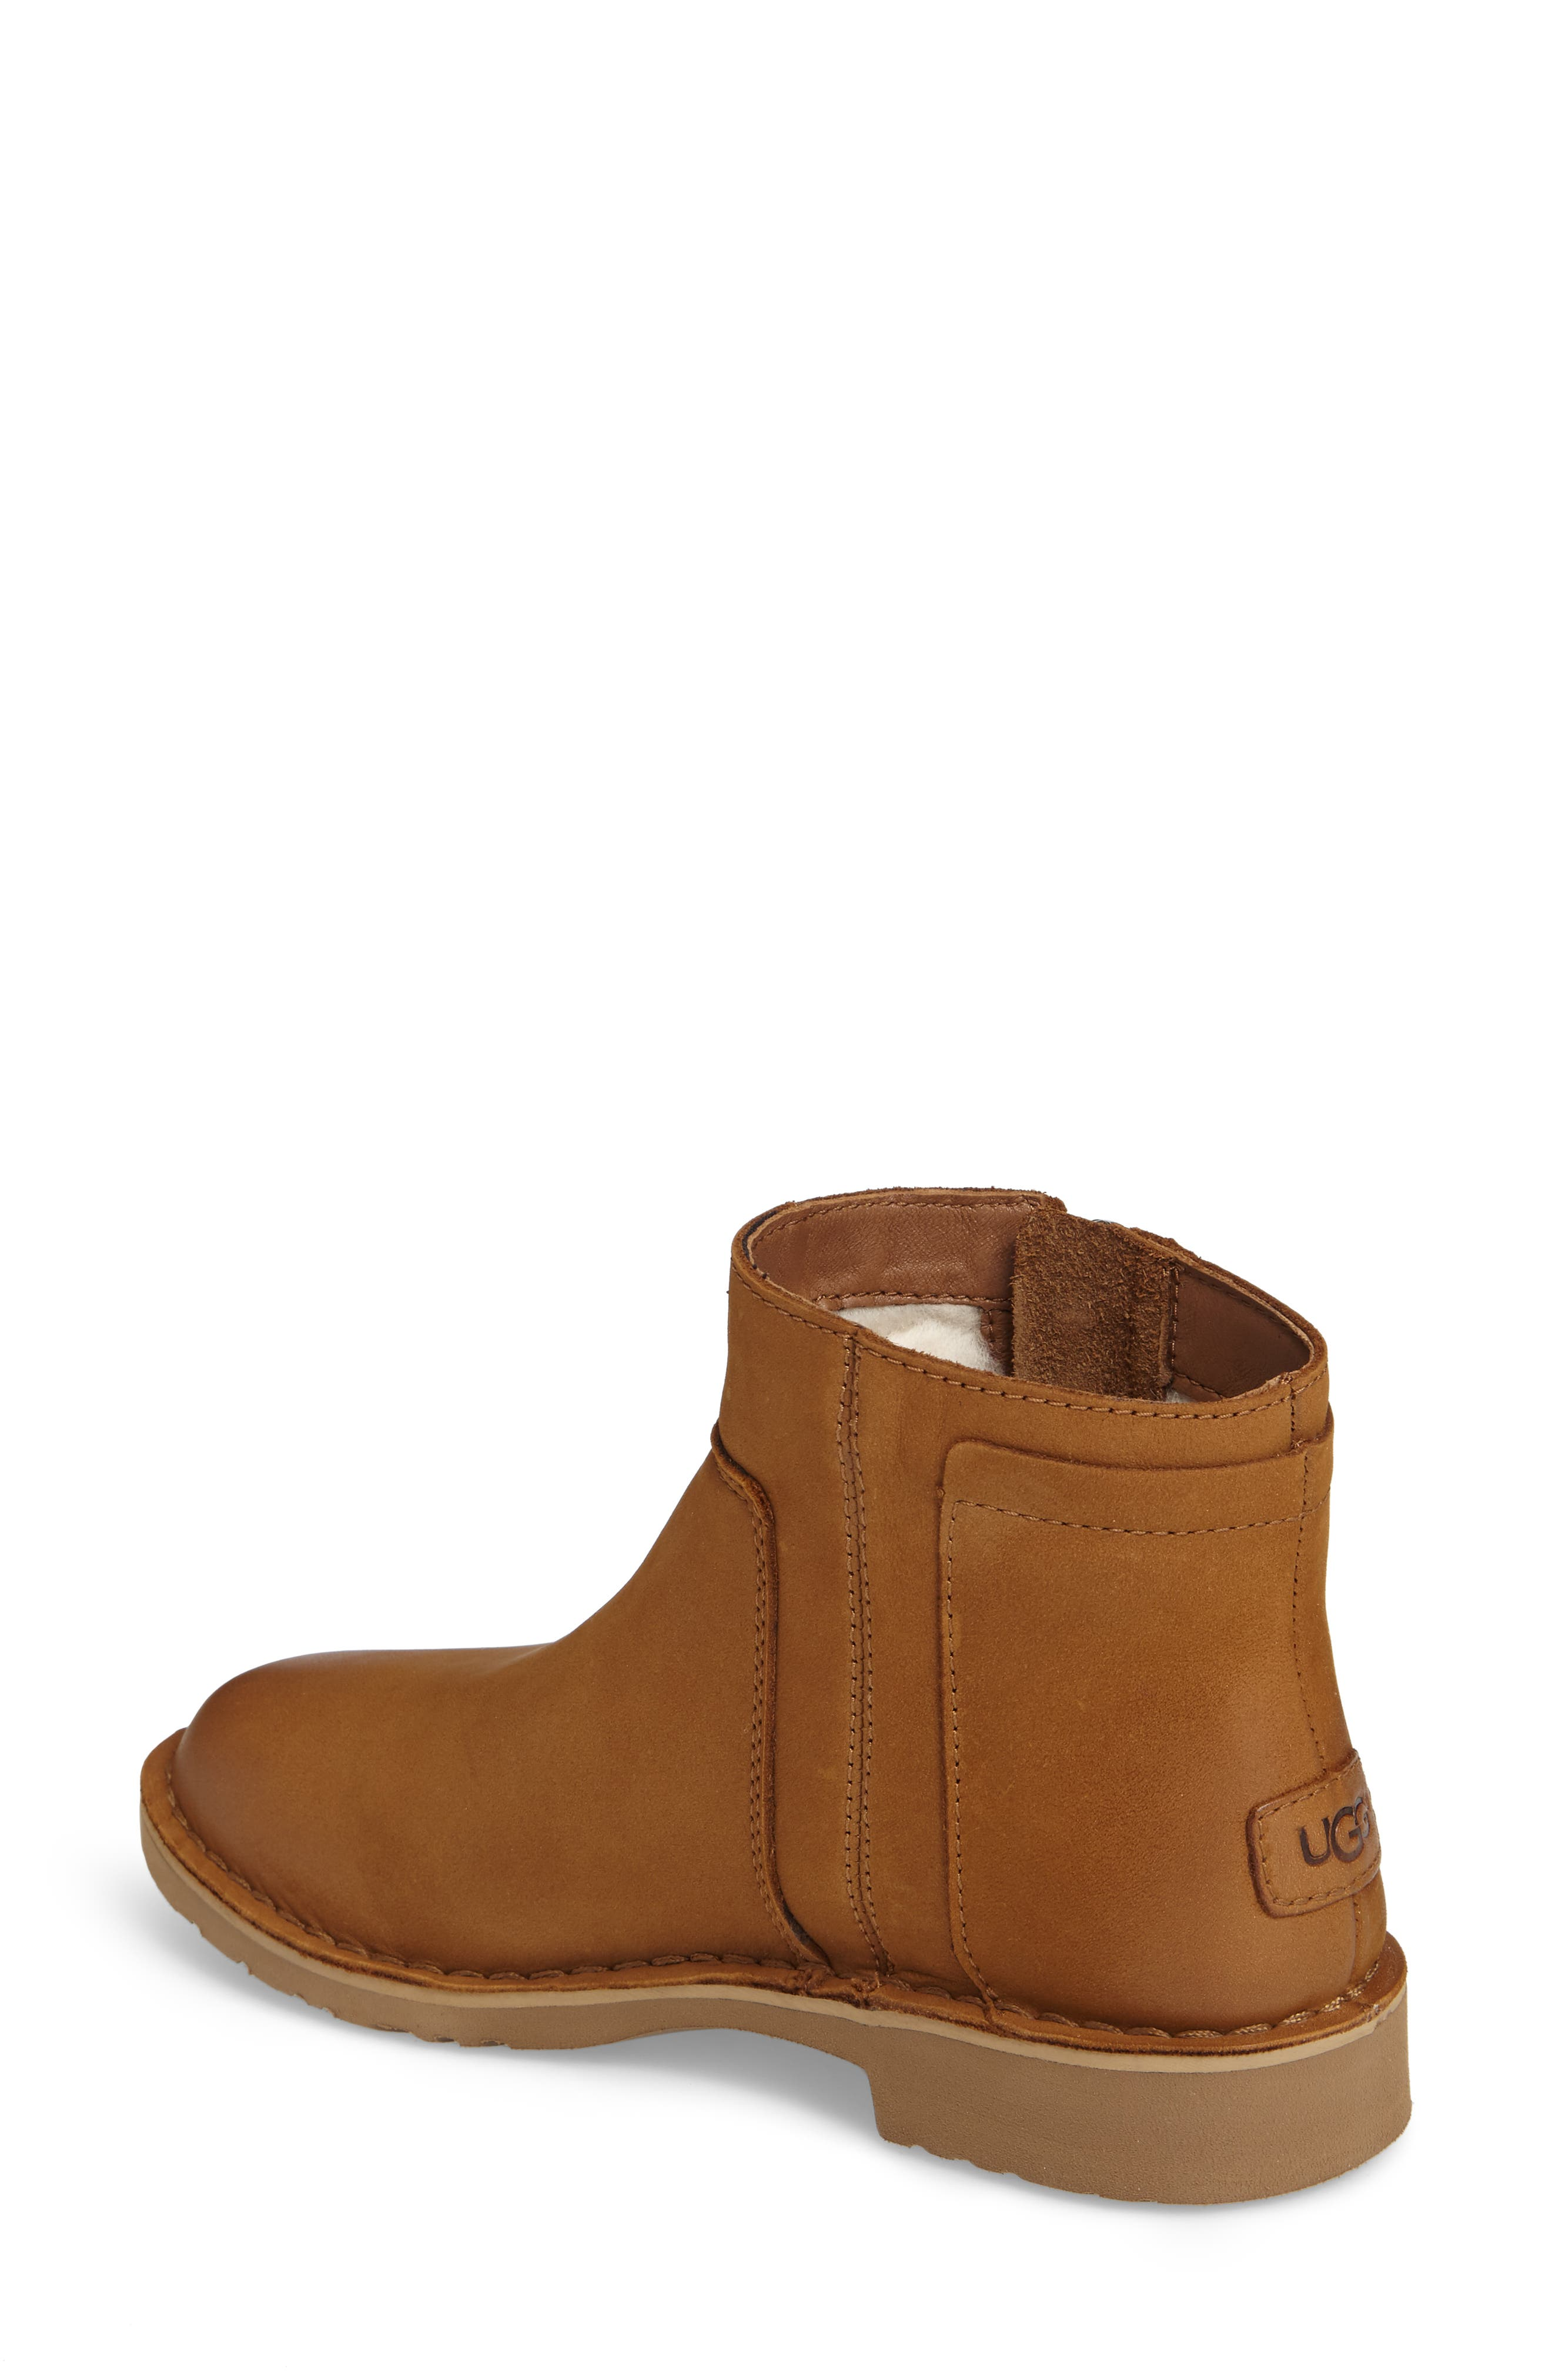 Alternate Image 2  - UGG® Rea Bootie (Women)